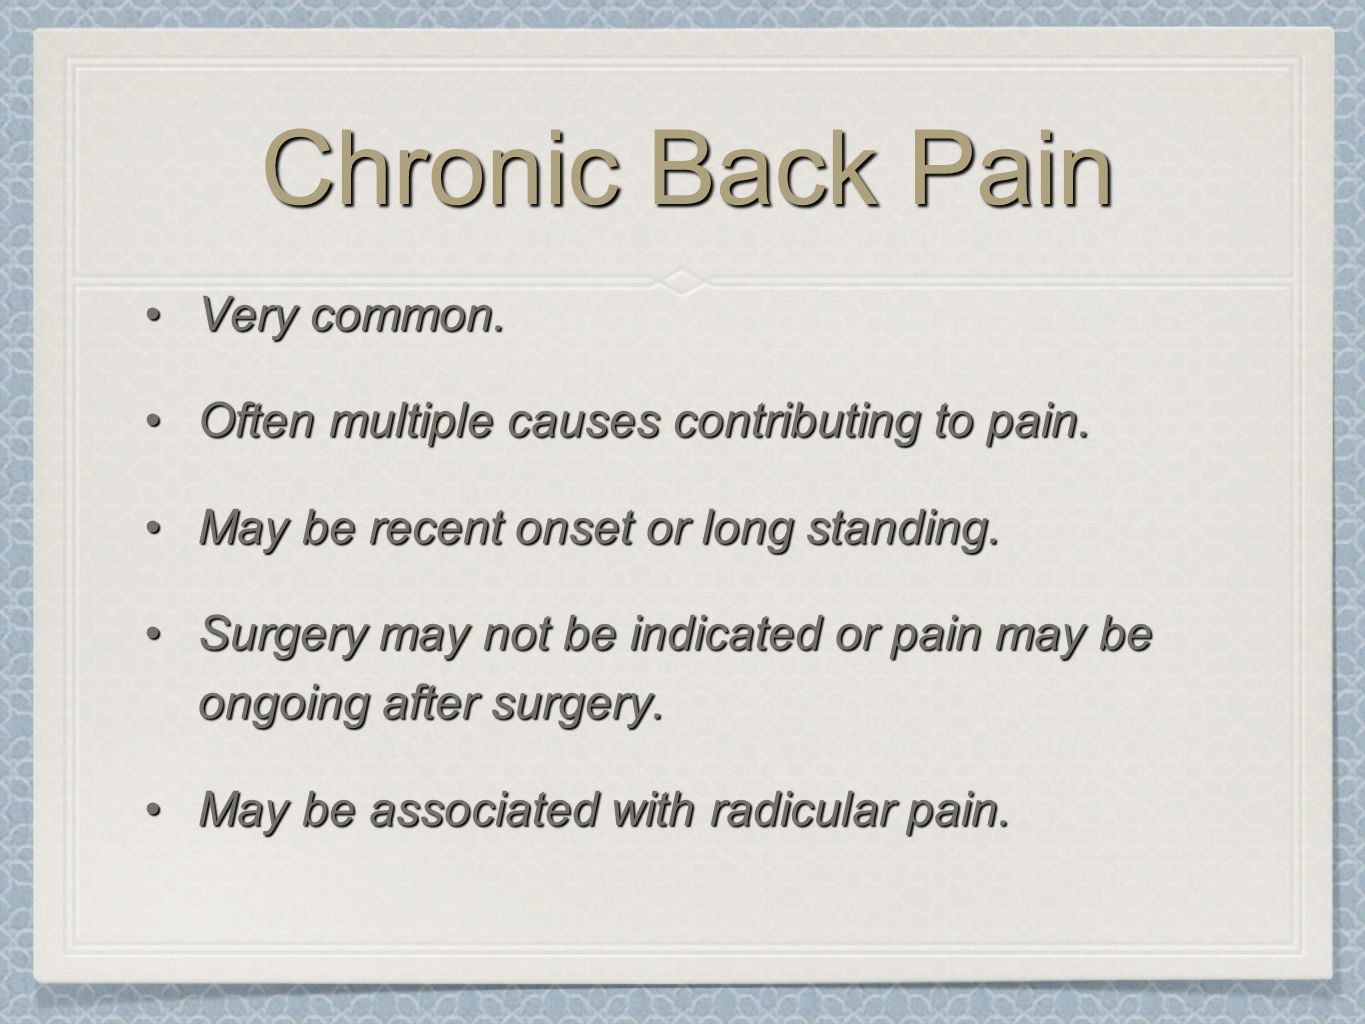 Chronic Back Pain Very common.